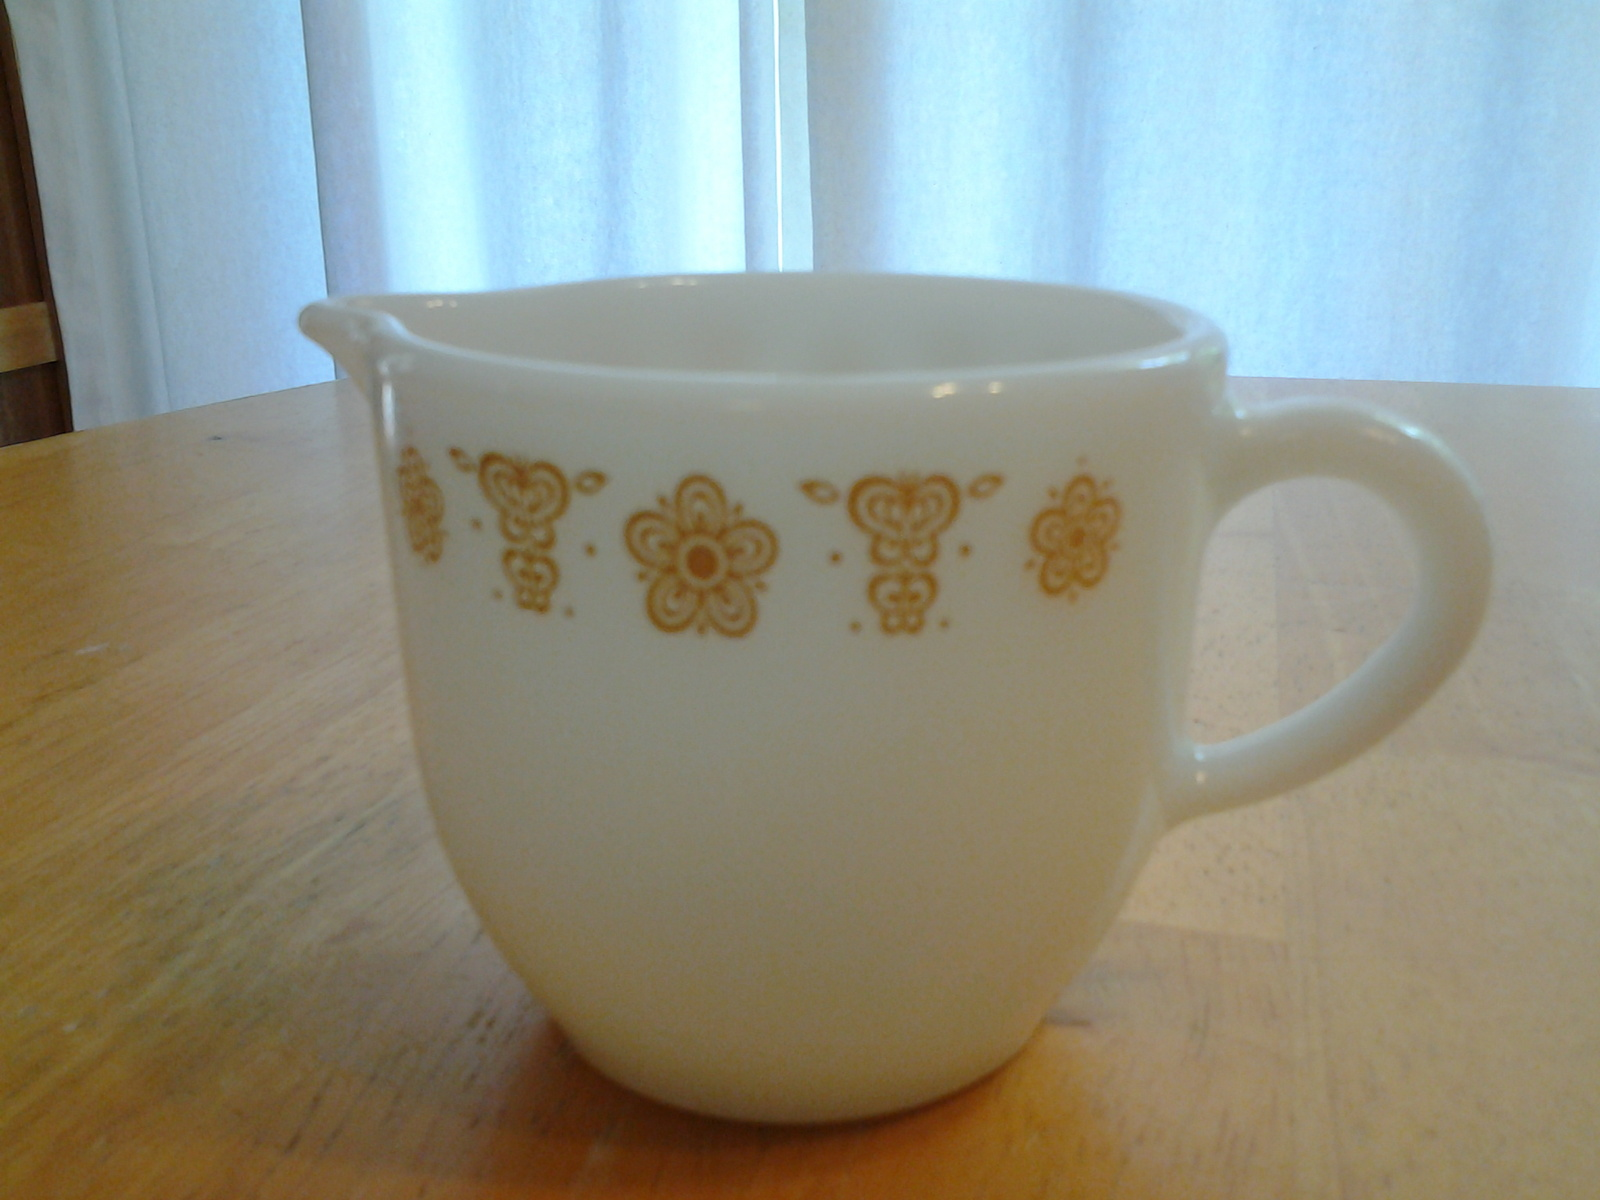 Pyrex Tableware Corning, #722 Cream Pitcher and 50 similar items